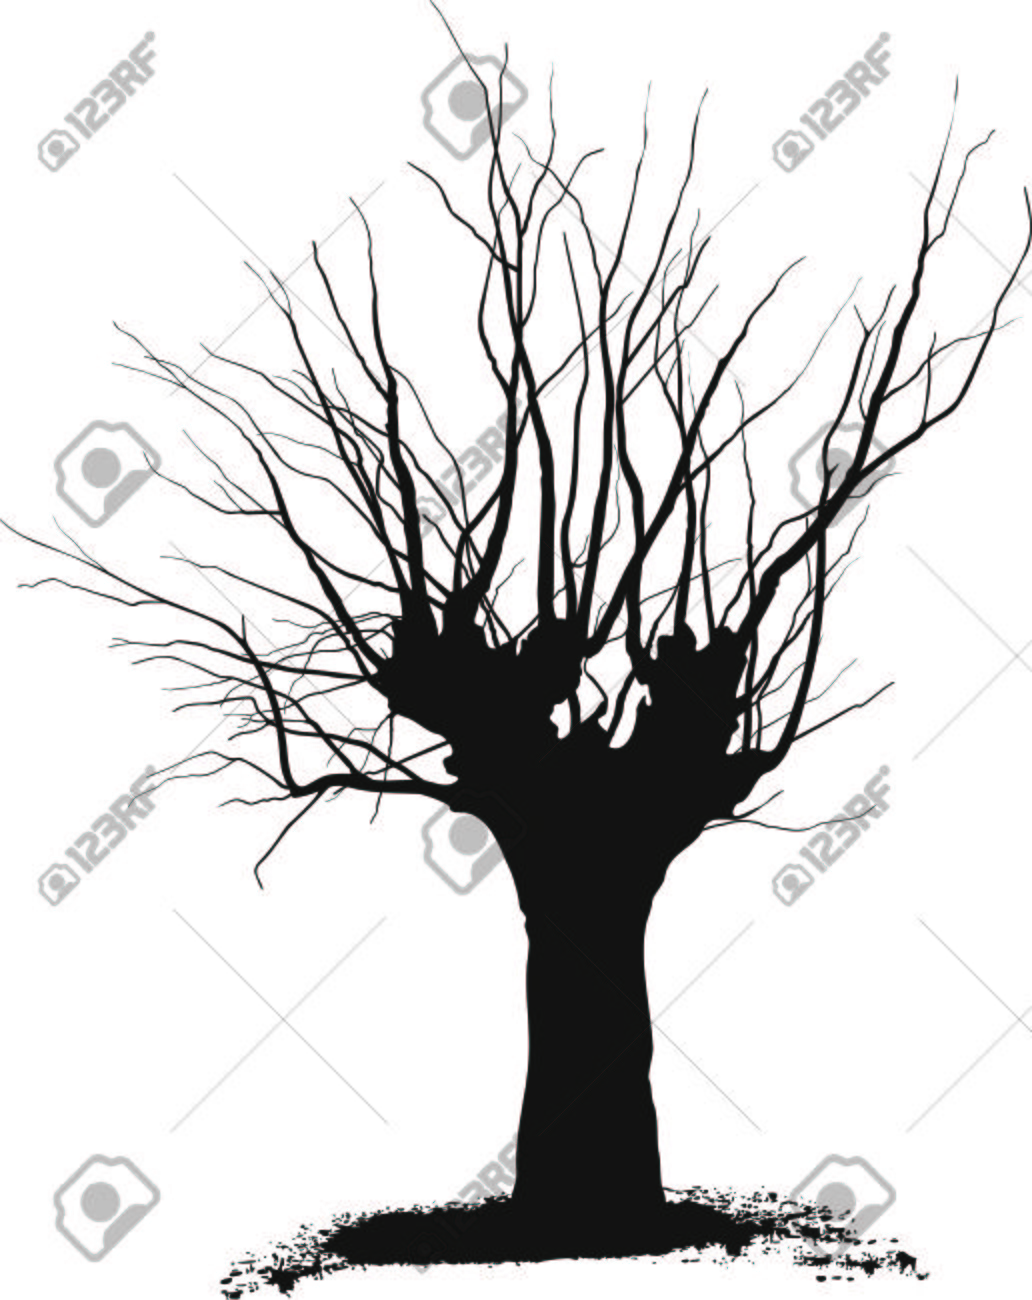 Silhouette acacia tree black